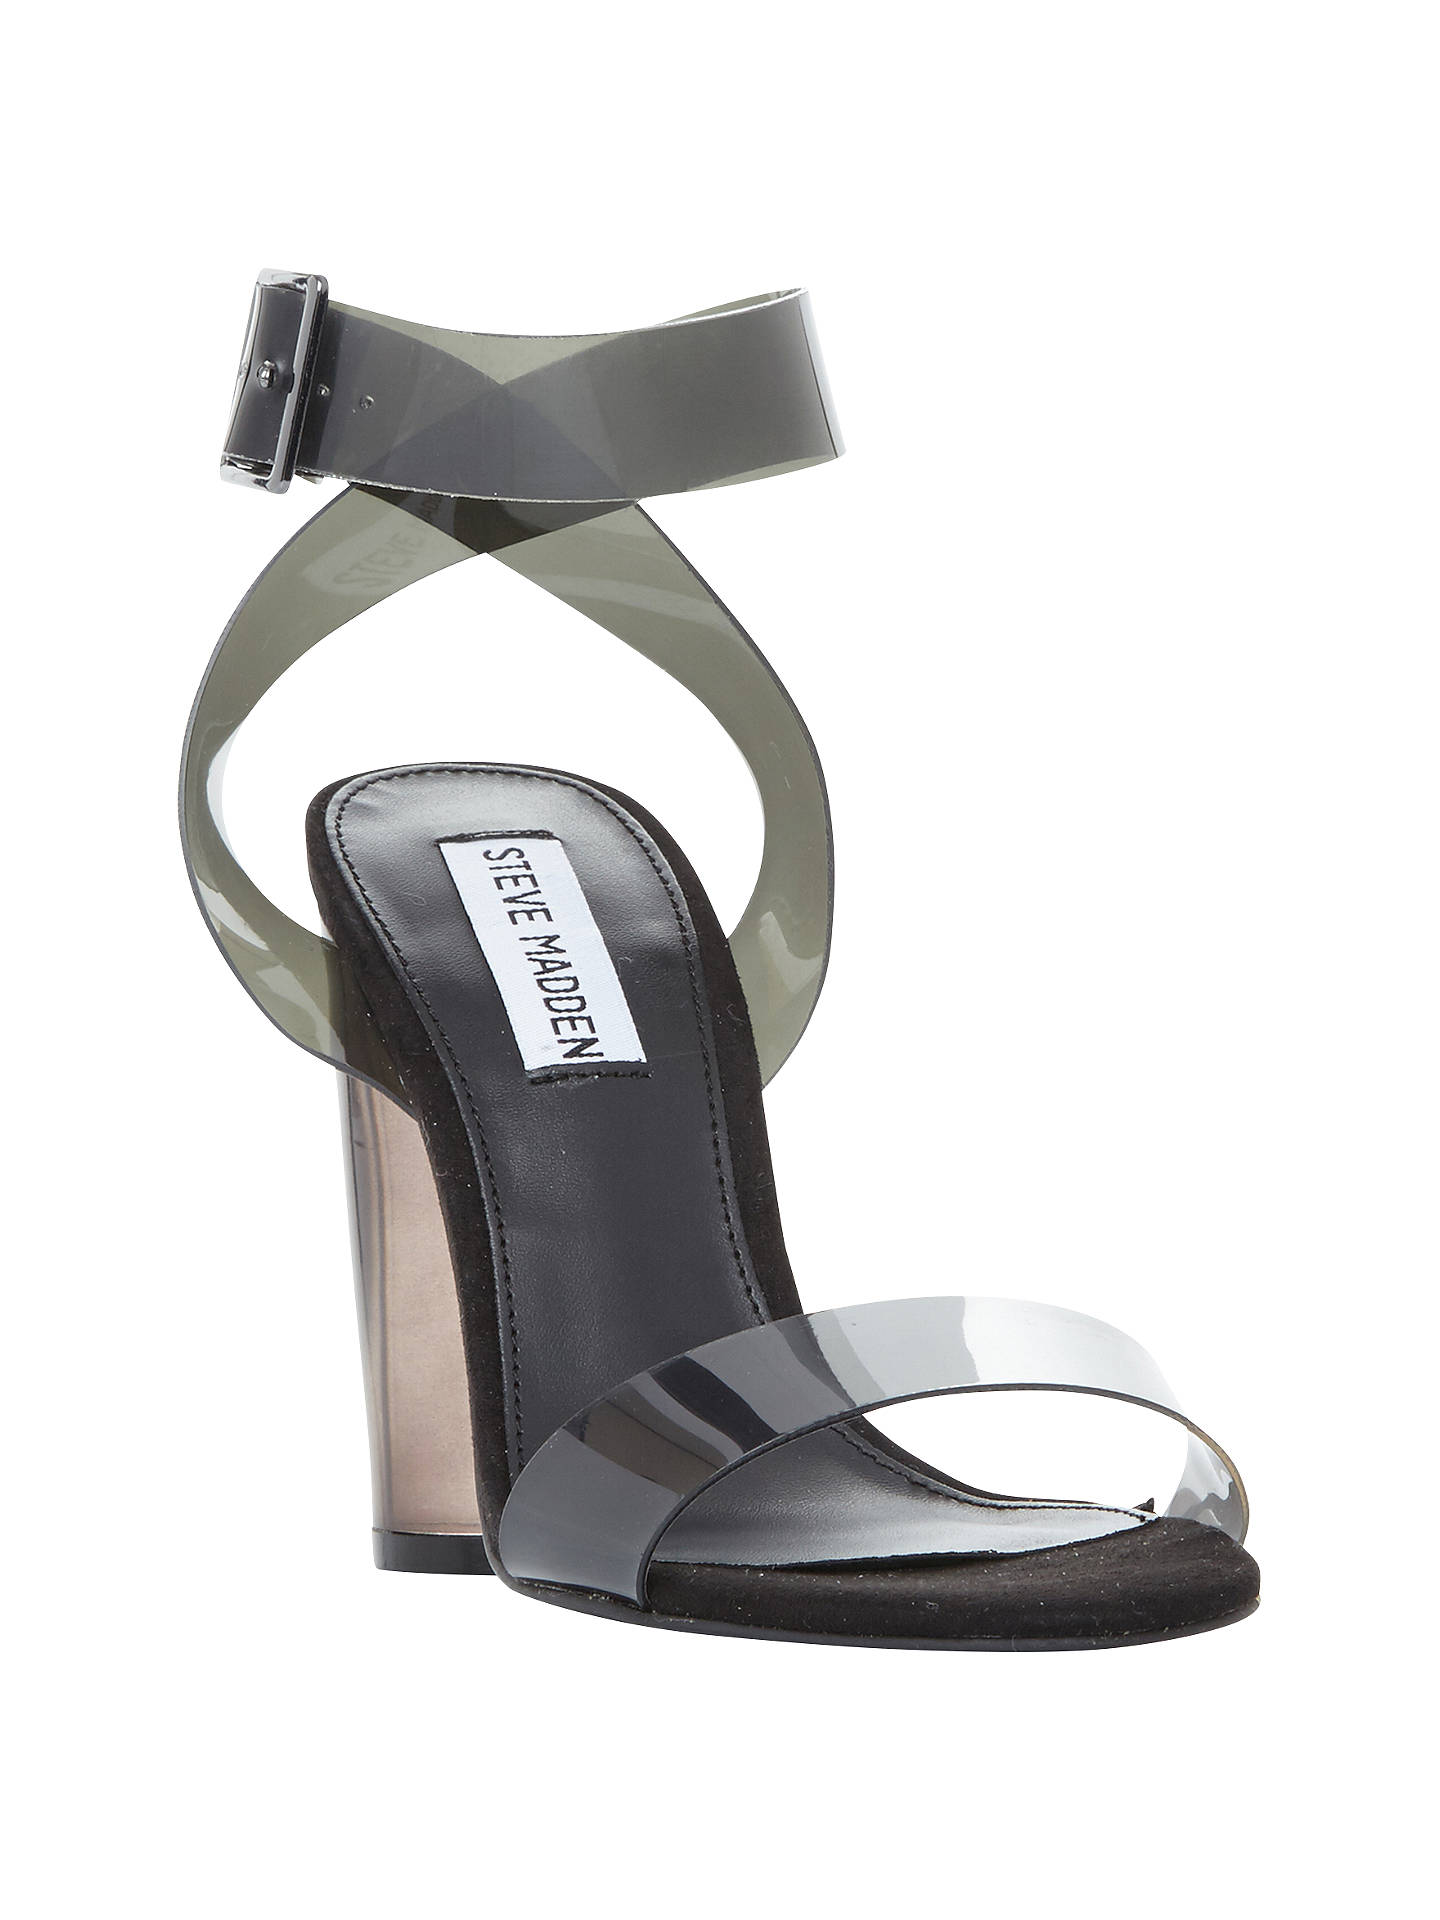 5bde40dbc83 Buy Steve Madden Clearer Strappy Sandals